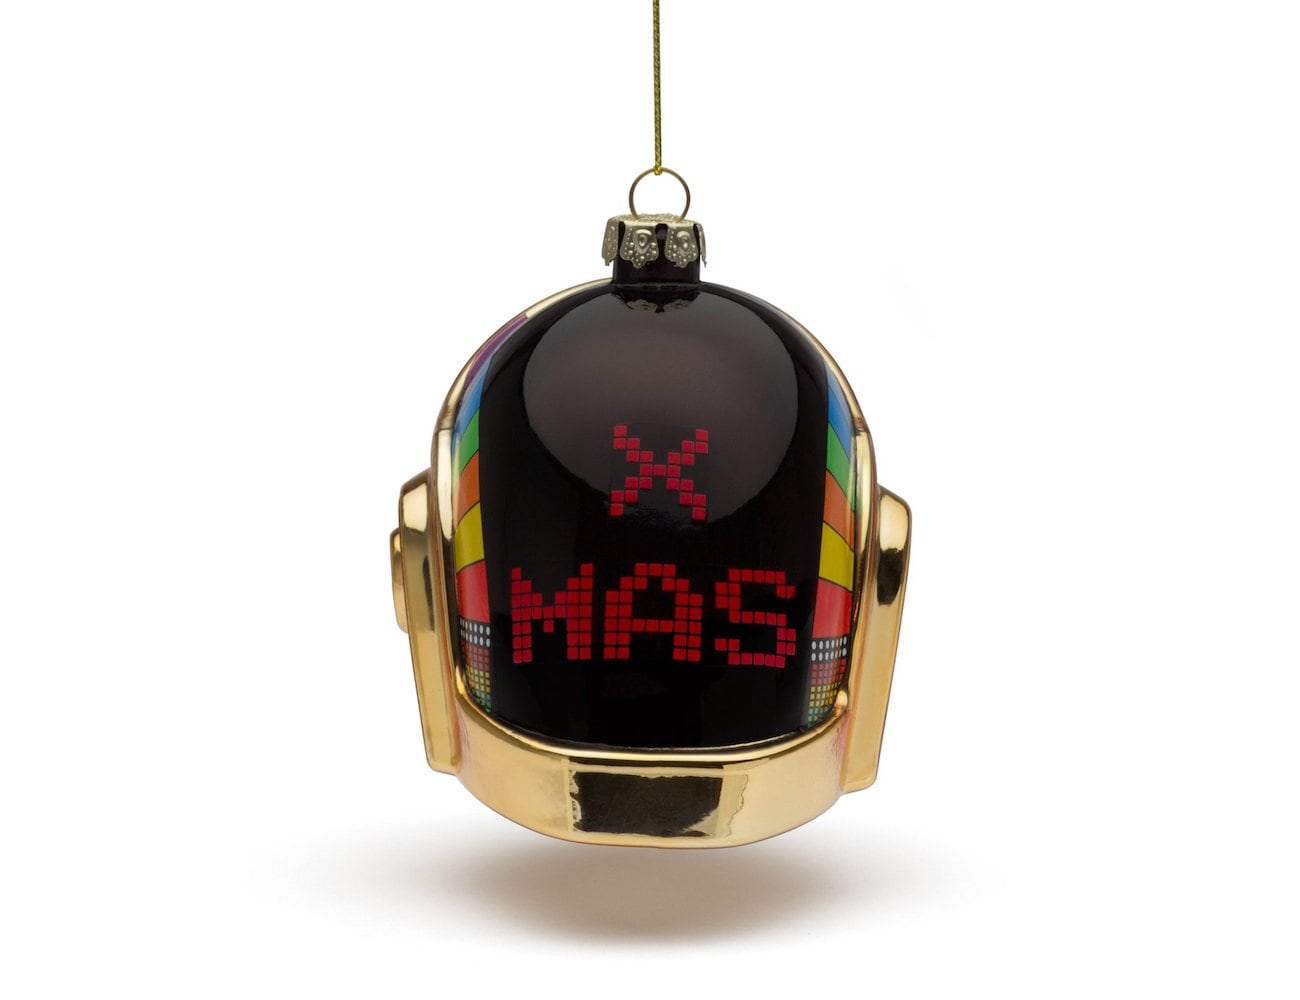 Daft Punk Limited Edition Ornament Set